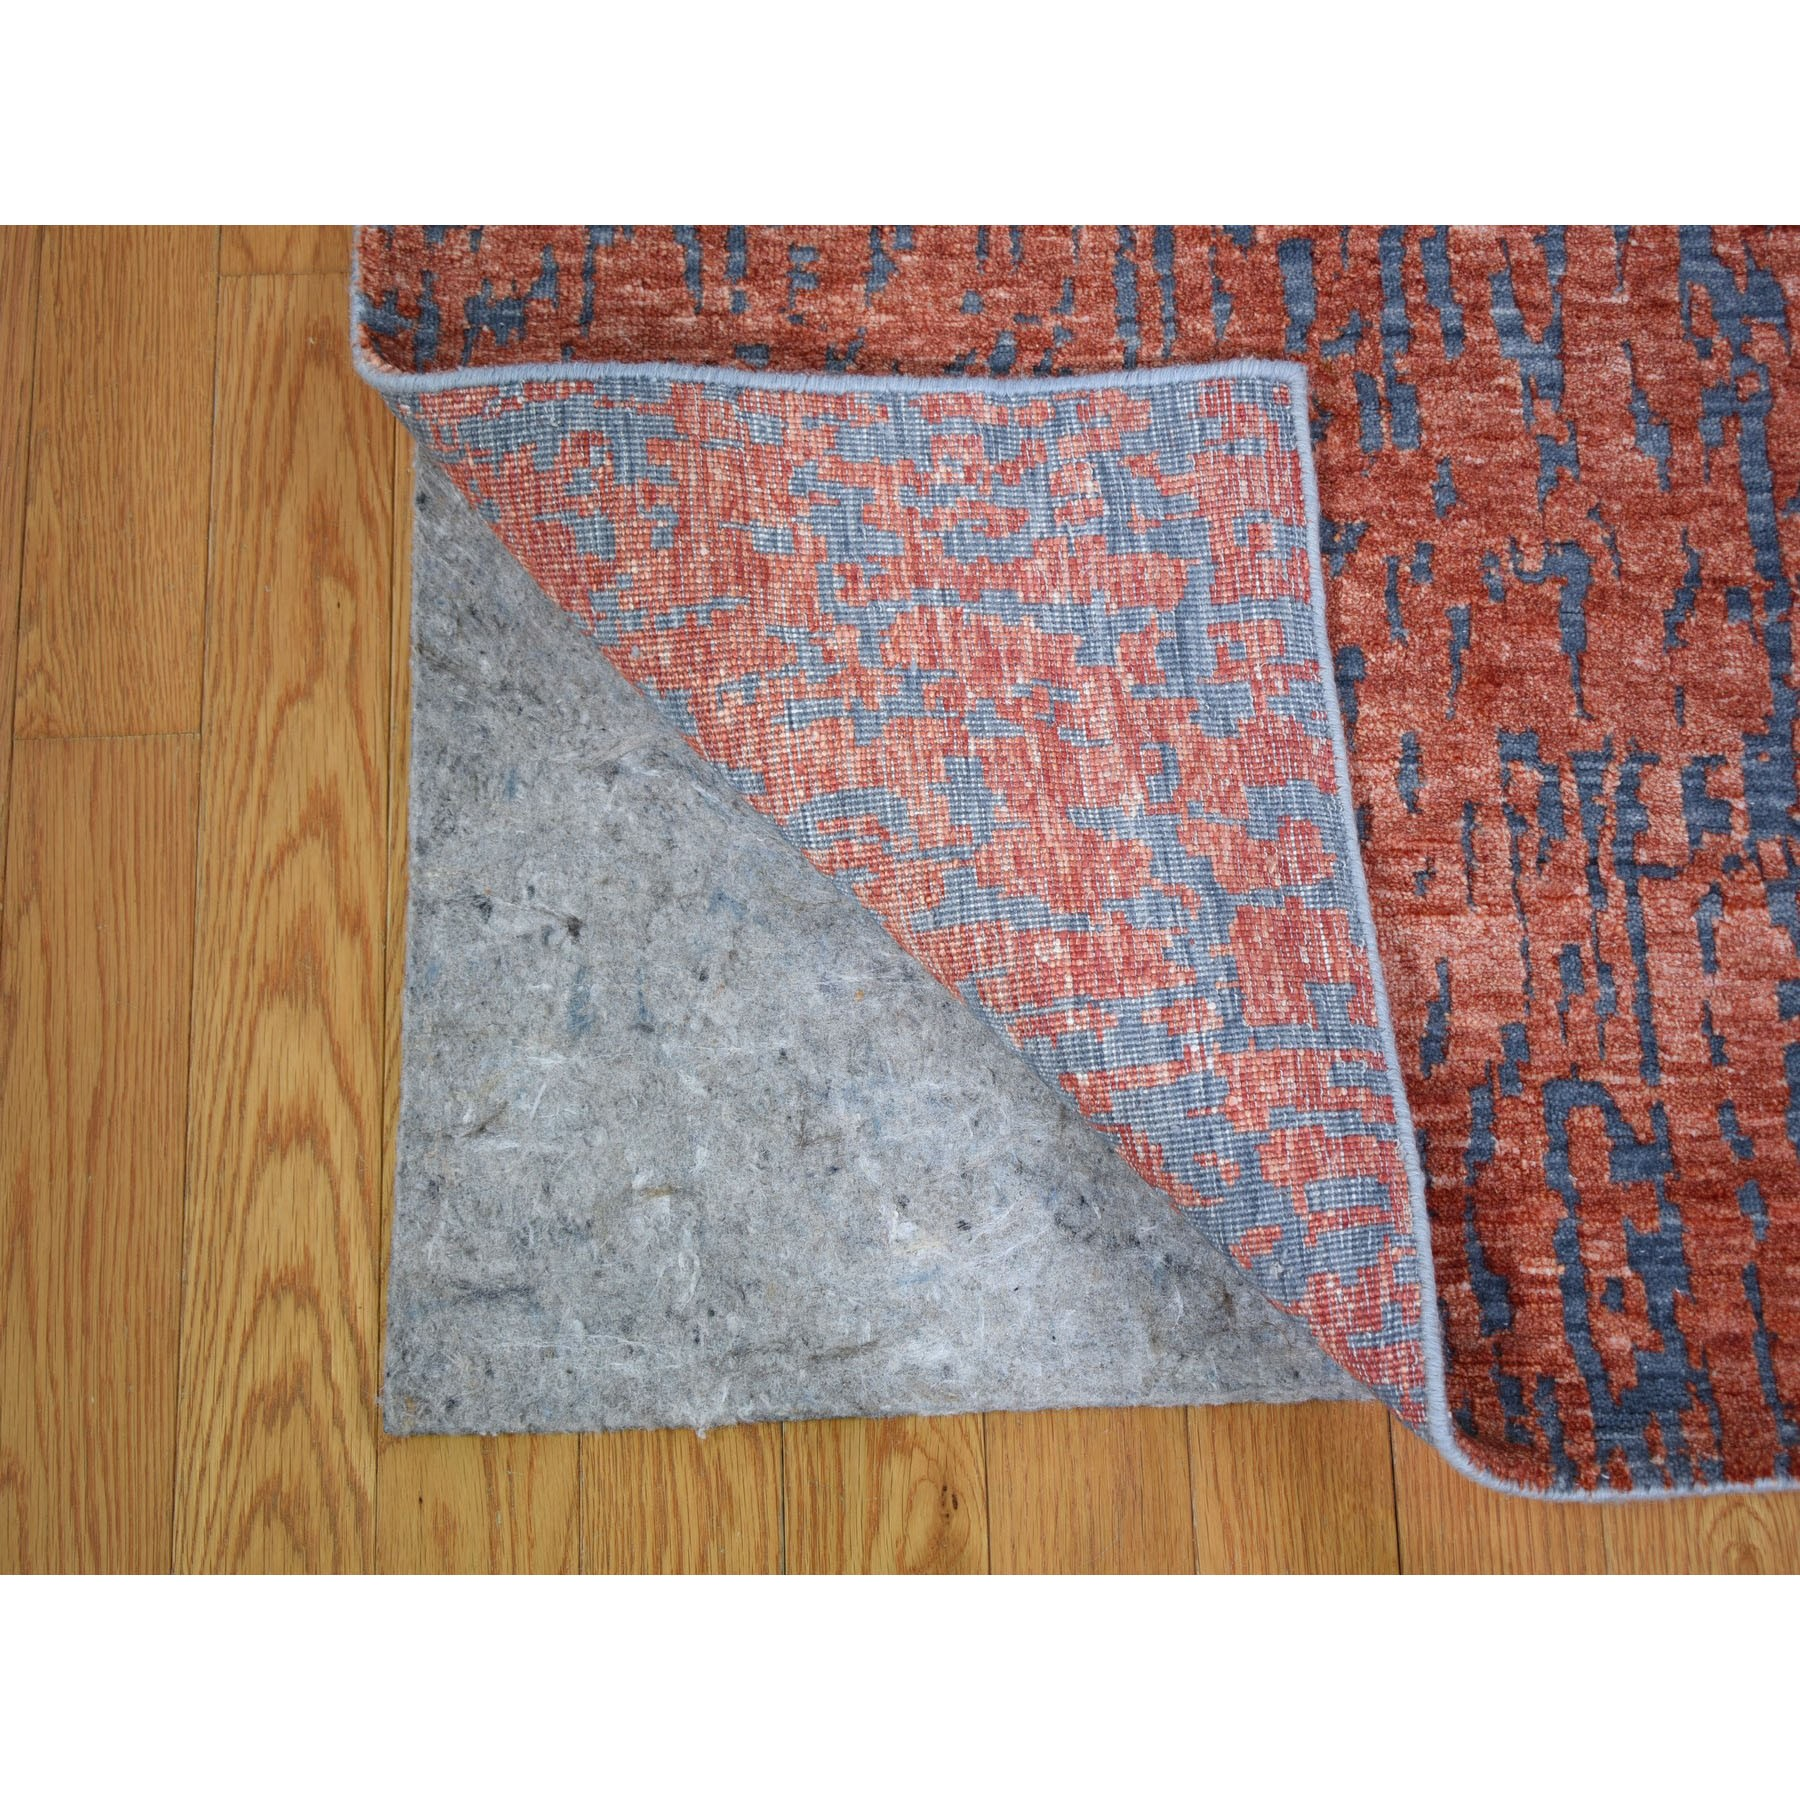 9'x12' Wool And Silk Hi-Low Pile Modern Hand Knotted Oriental Rug